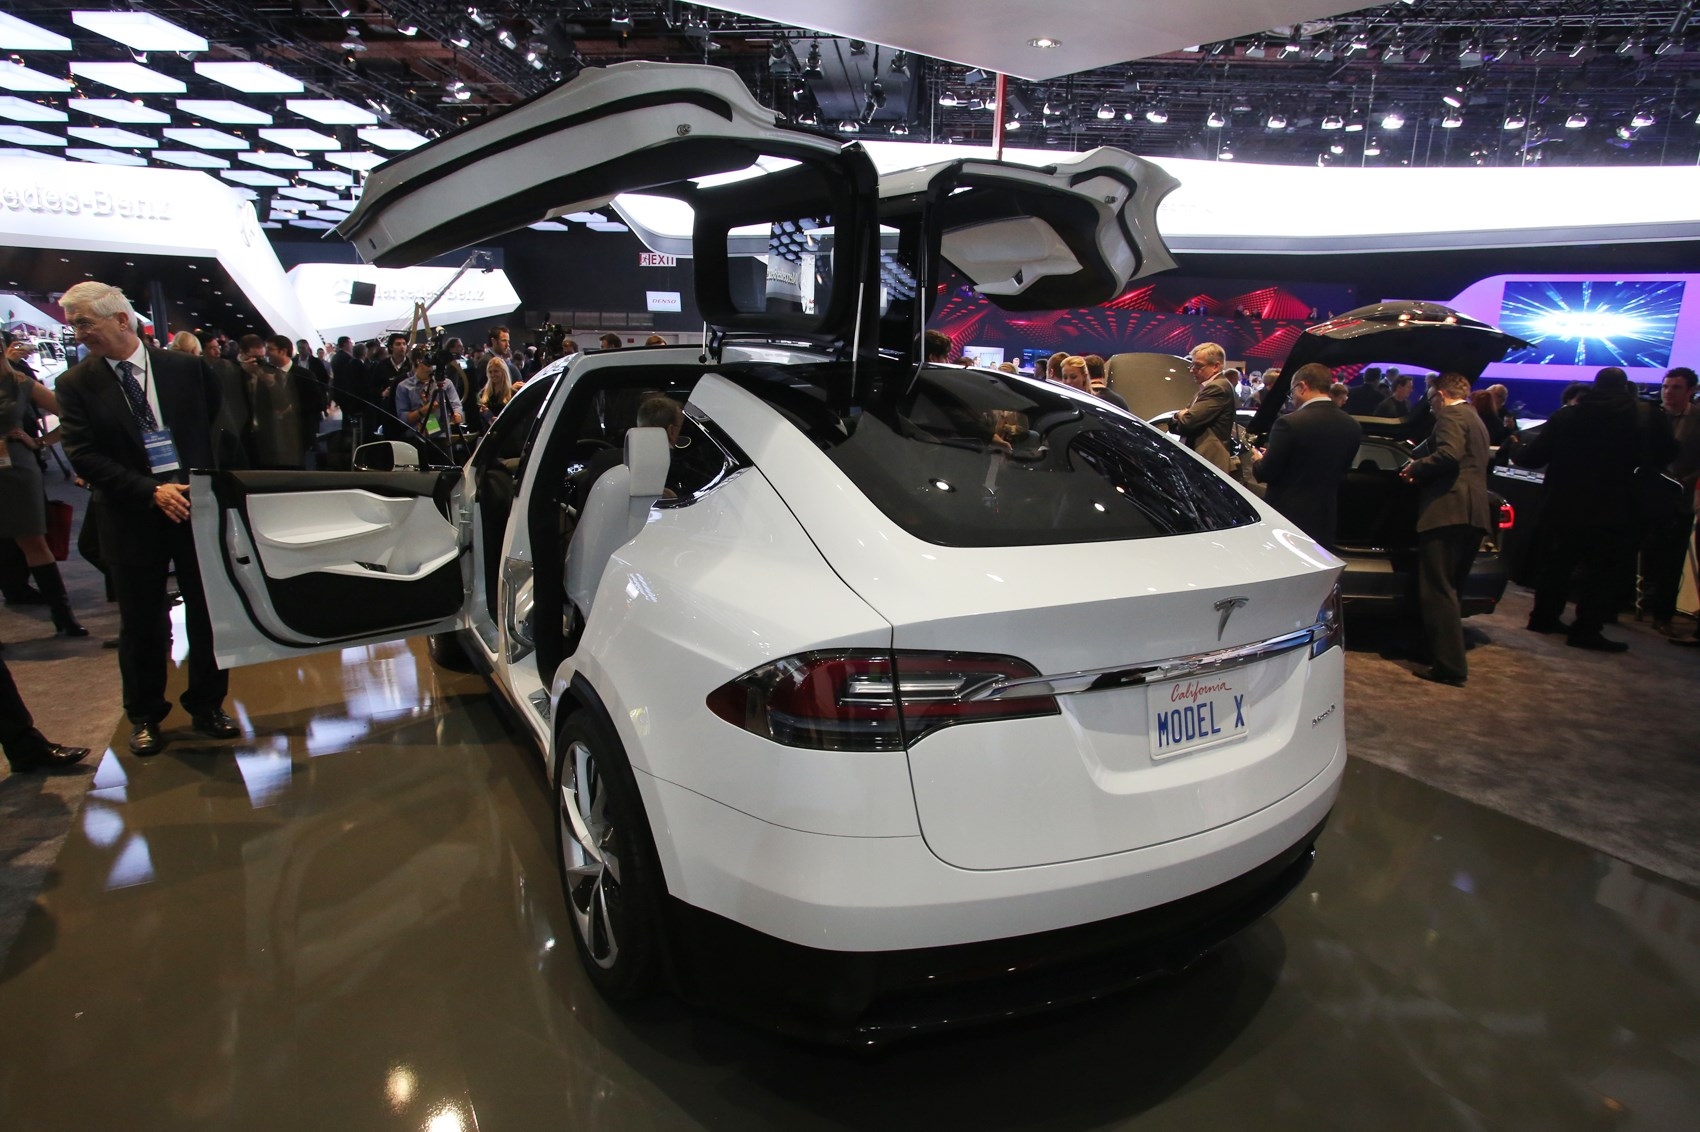 2016 tesla model x small electric suv price range -  Falcon Wing Doors Contain Sensors To Avoid Opening Into Surrounding Objects